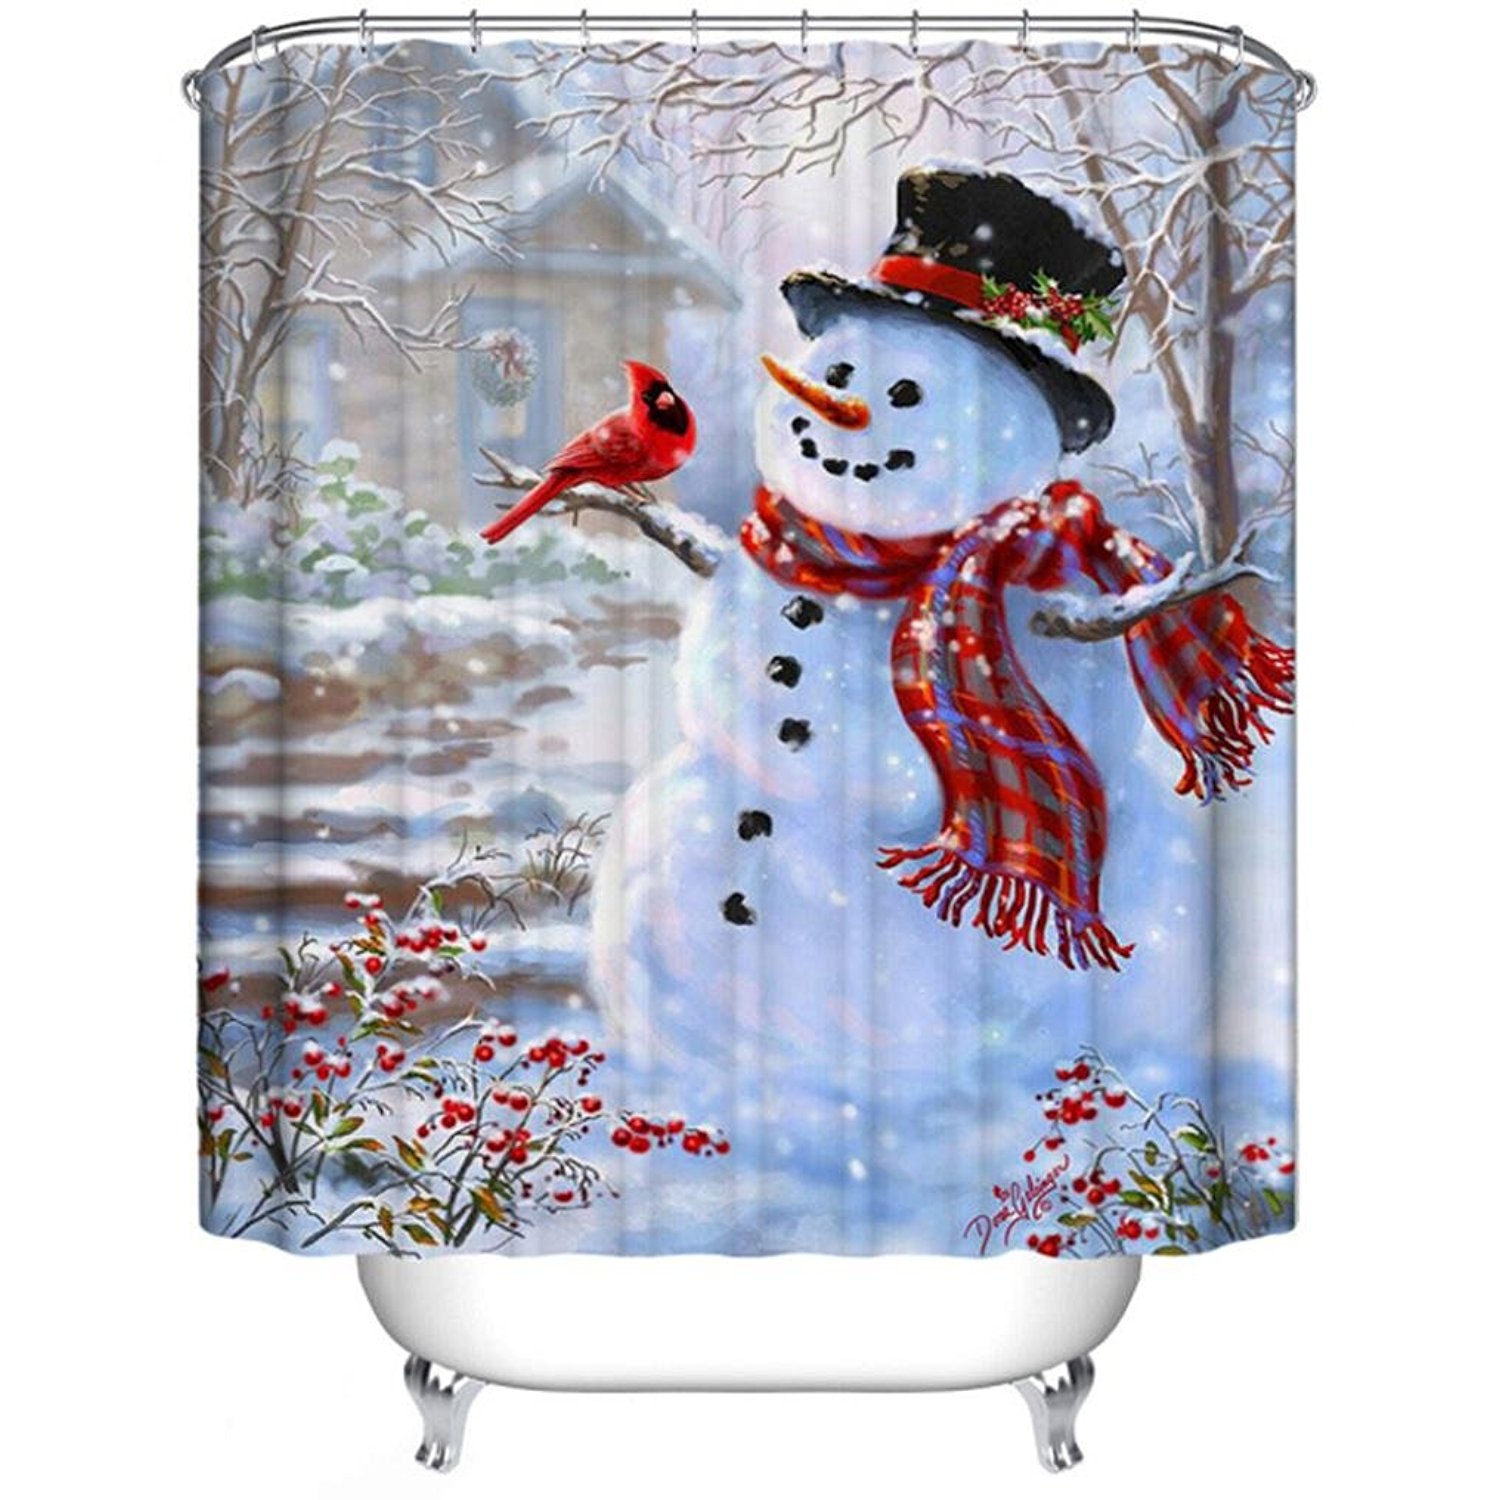 Winter shower curtain - Charmhome Winter Holiday Merry Christmas Happy Snowman And Cardinals Shower Curtain Waterproof Polyester Fabric Bath Curtain